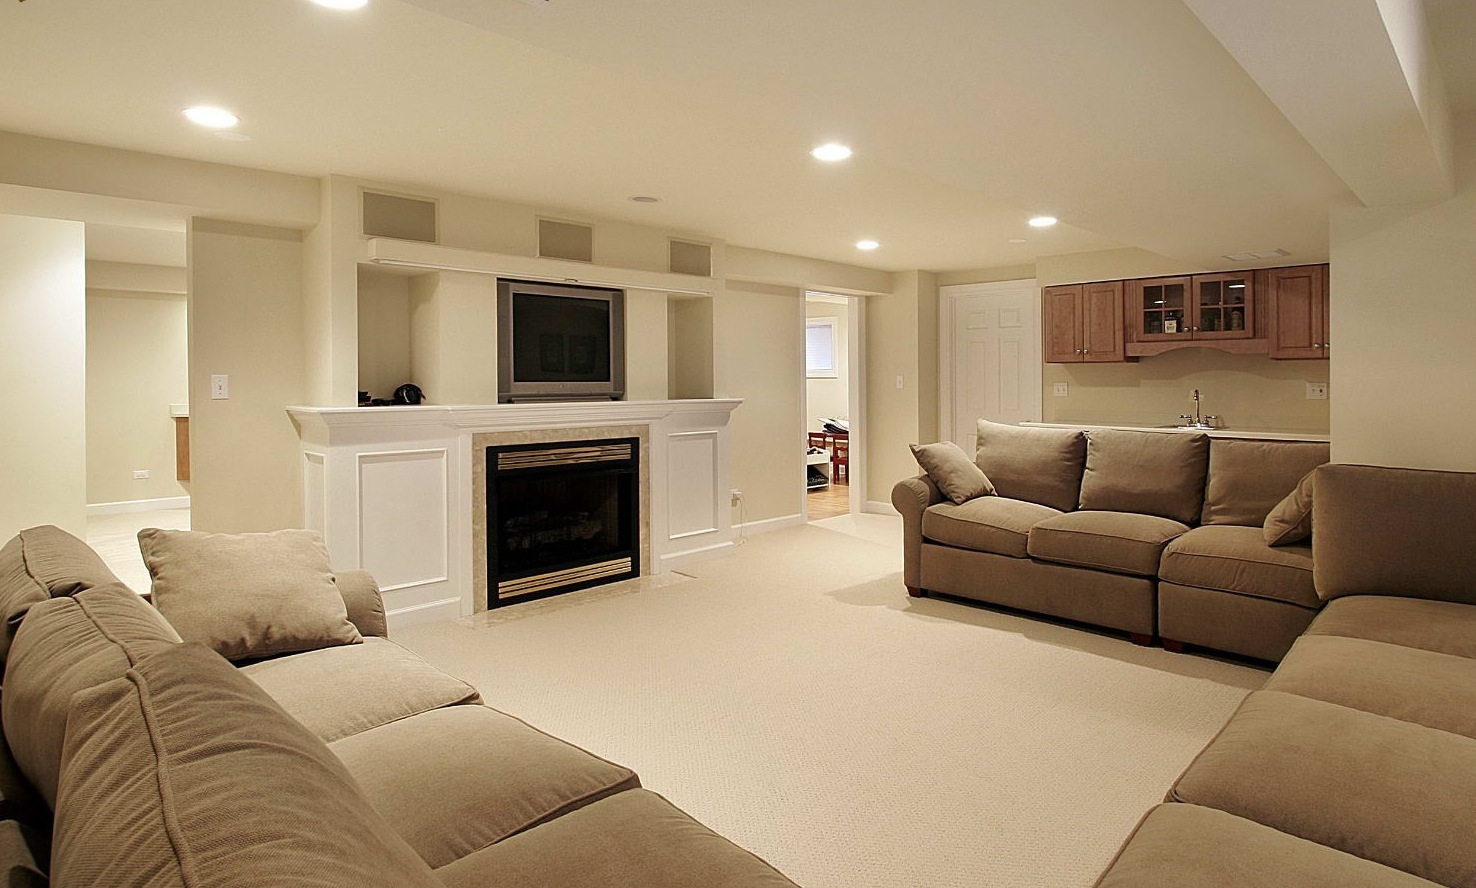 Basement Remodeling Ideas 30 Basement Remodeling Ideas & Inspiration